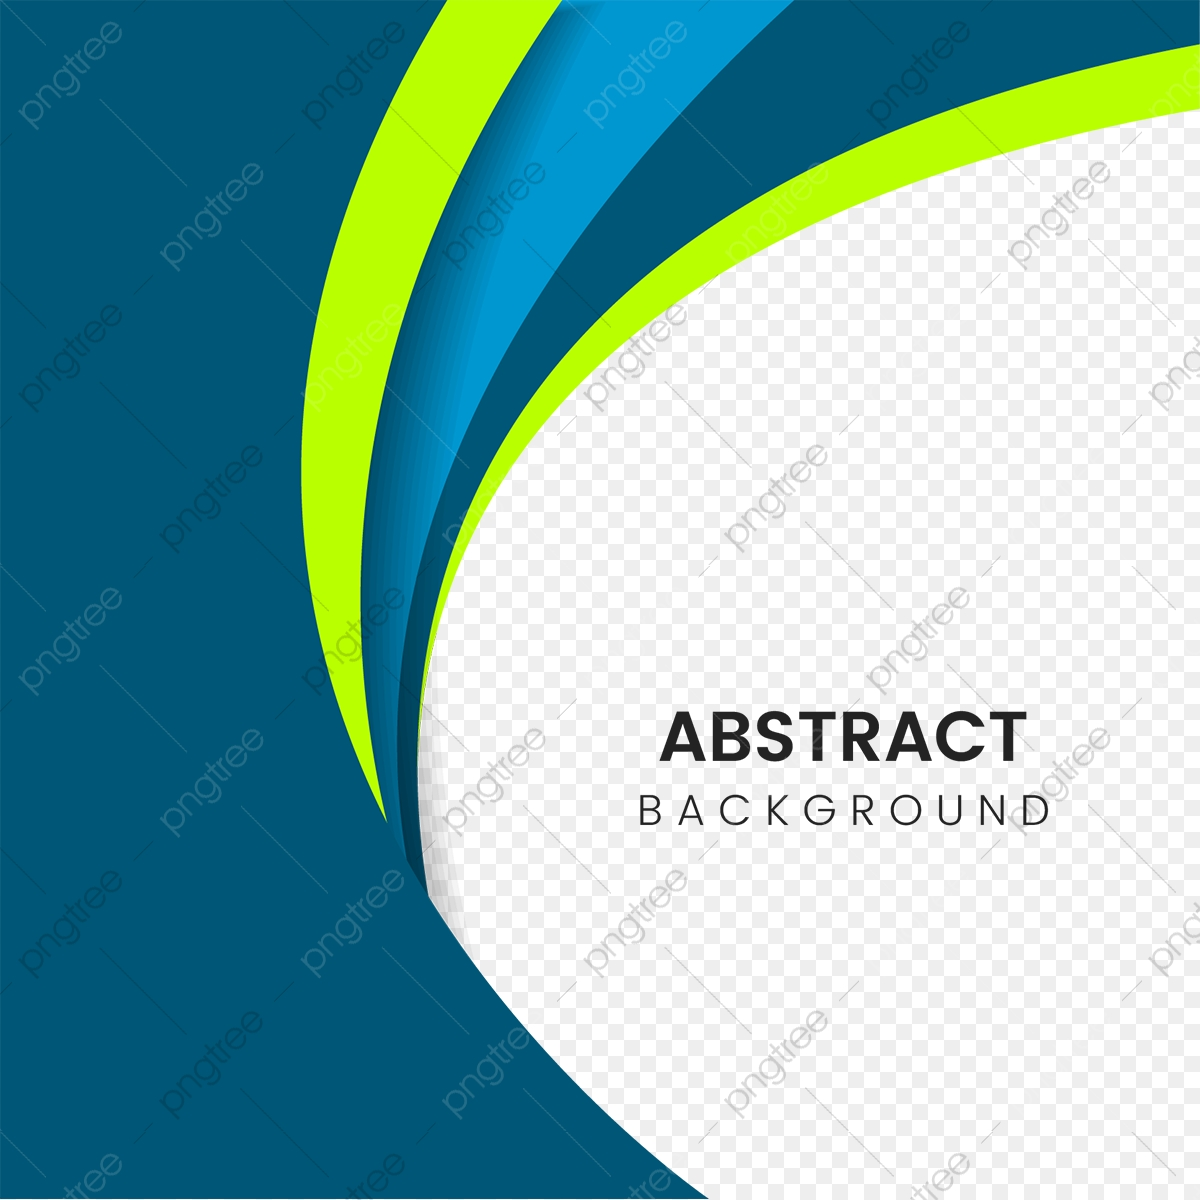 abstract background with multi color strip abstract professional multi color png and vector with transparent background for free download https pngtree com freepng abstract background with multi color strip 3577551 html